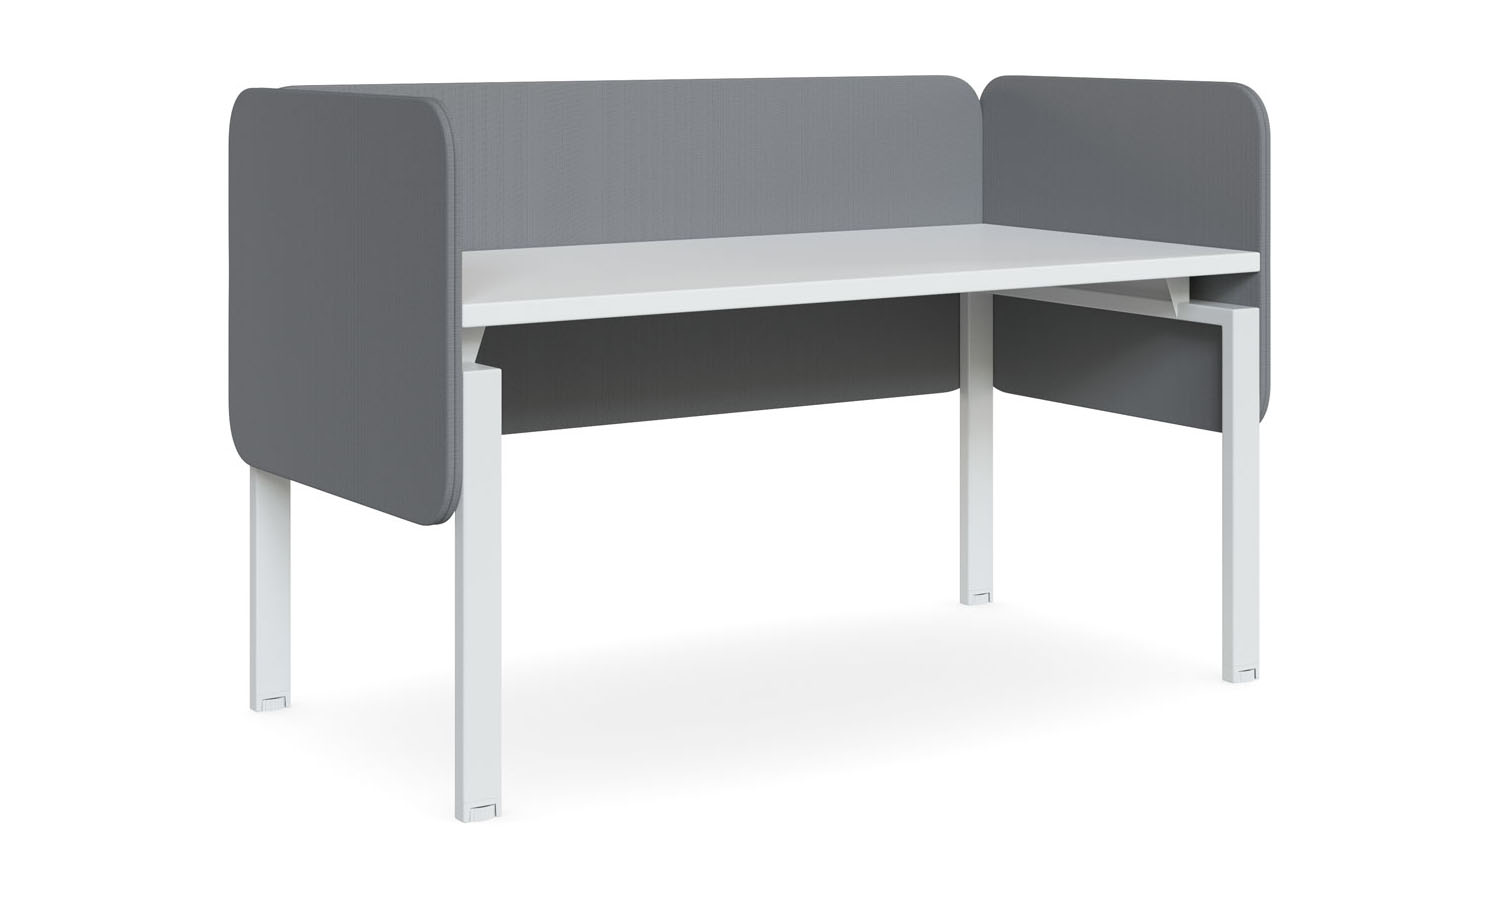 Local_Desk_Mounted_Screen_3_sides.jpg